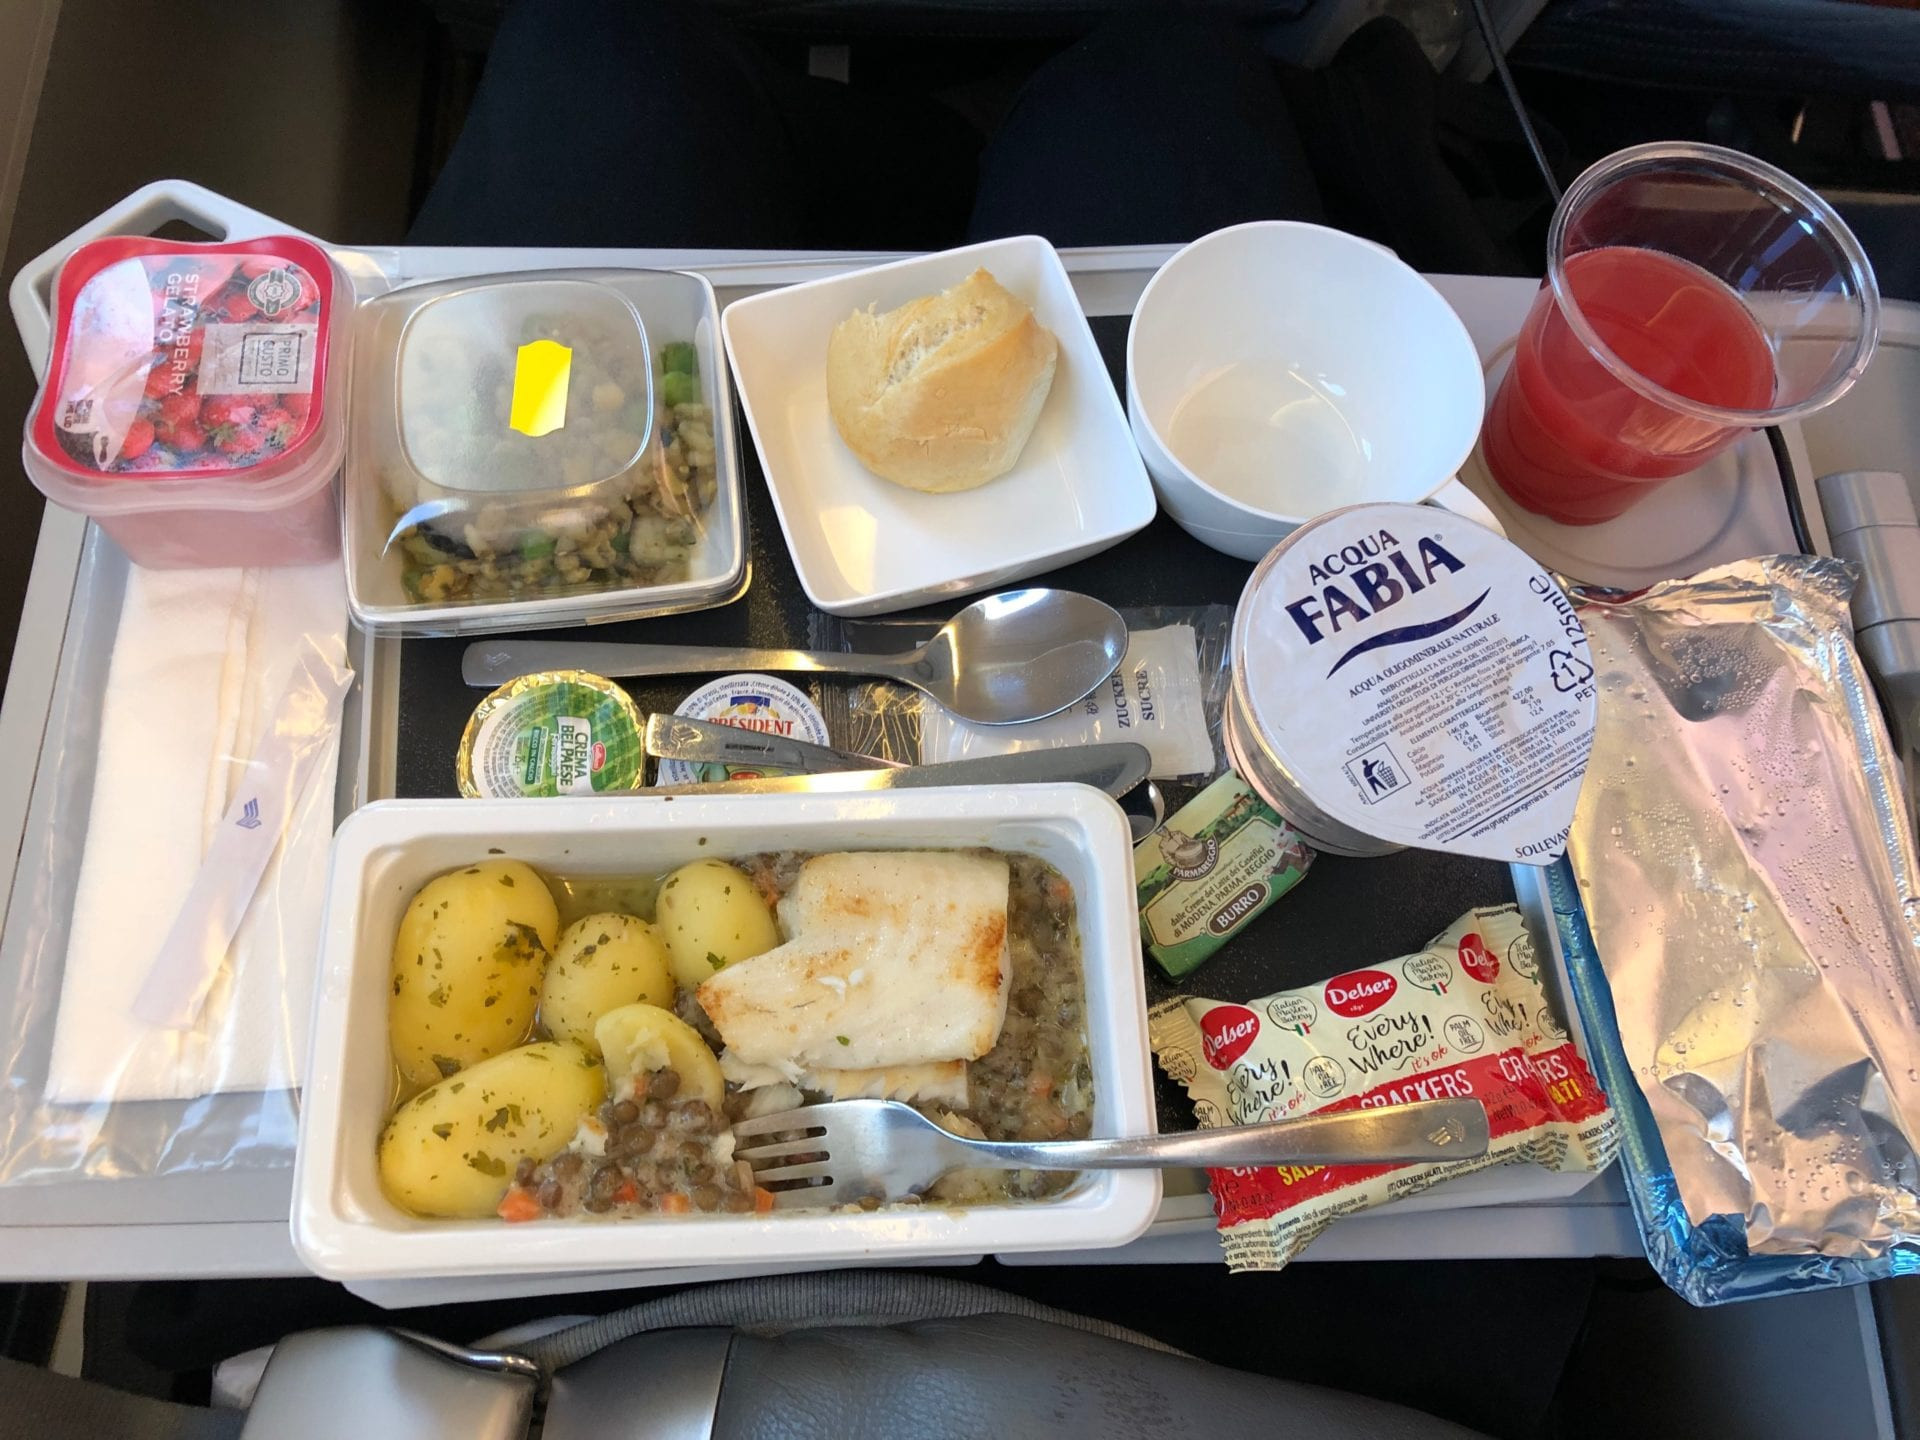 Singapore Airlines Premium Economy Class Lunch Servince